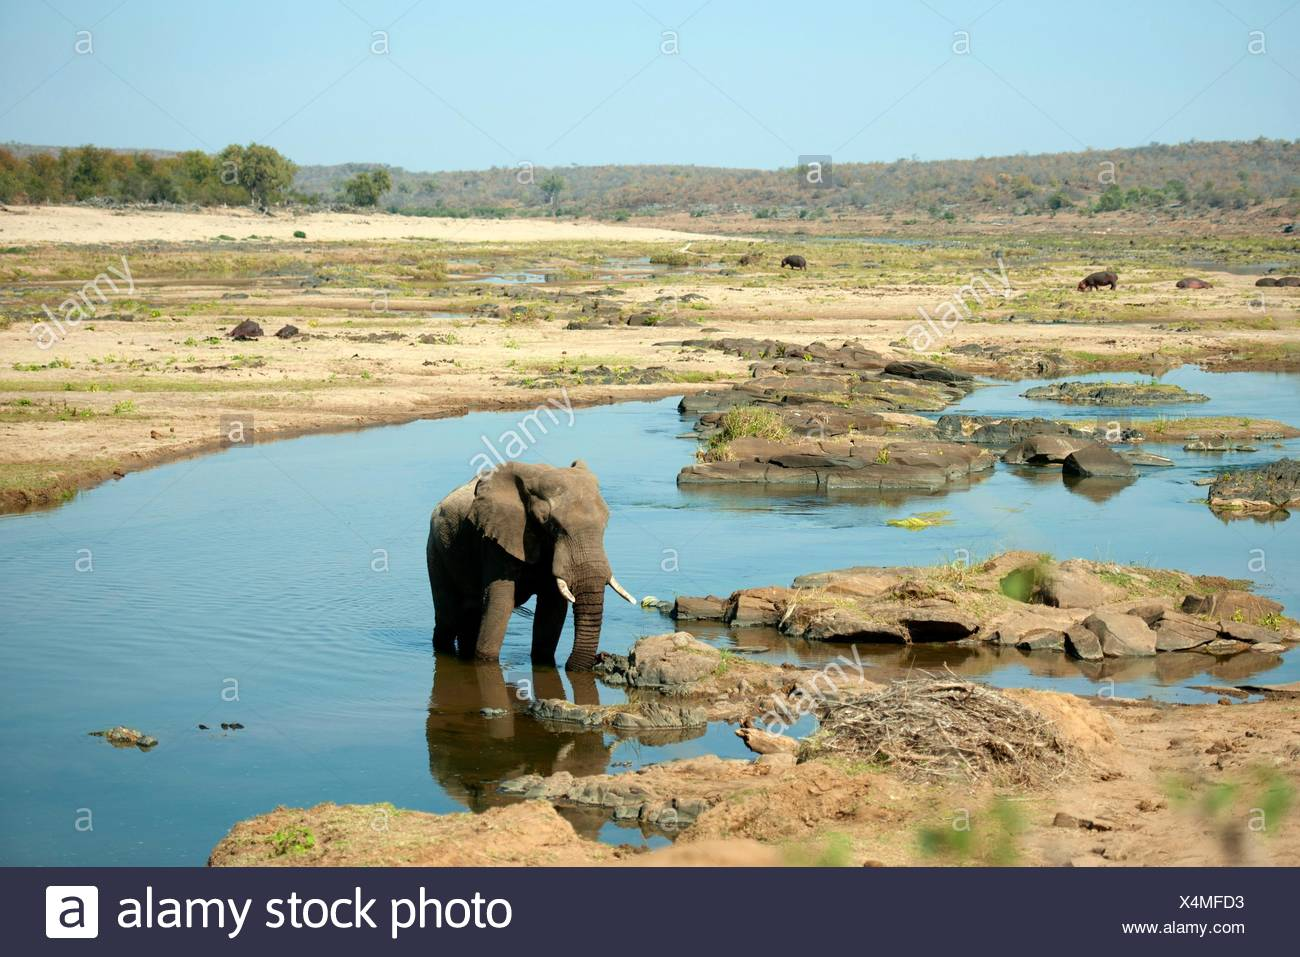 Elephant (Loxodonta africana) in river with Hippopotami (Hippopotamus amphibius) in background, Kruger National Park, Transvaal, South Africa. - Stock Image